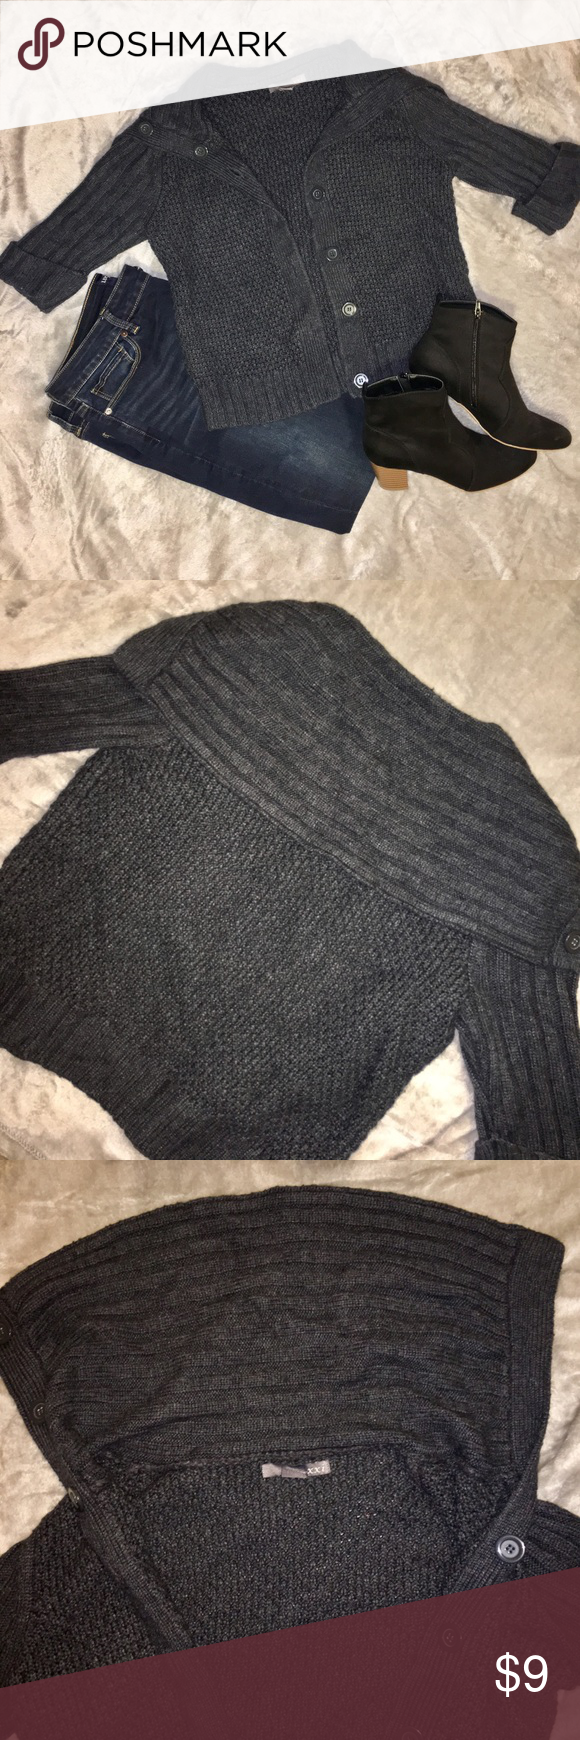 3/4 Sleeve Knit Sweater Comfortable and cute dark grey knit sweater with 3/4 sleeves. Forever 21 Jackets & Coats